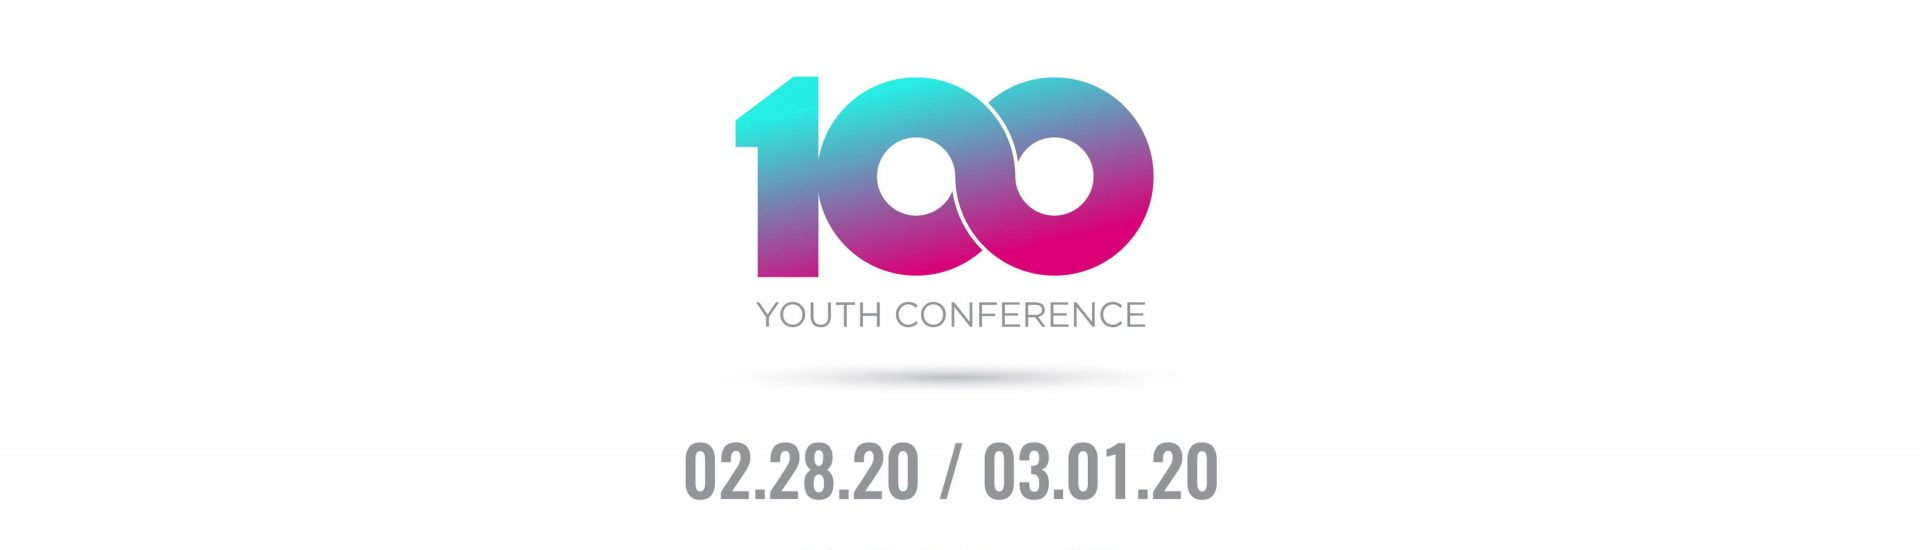 100 Youth Conference